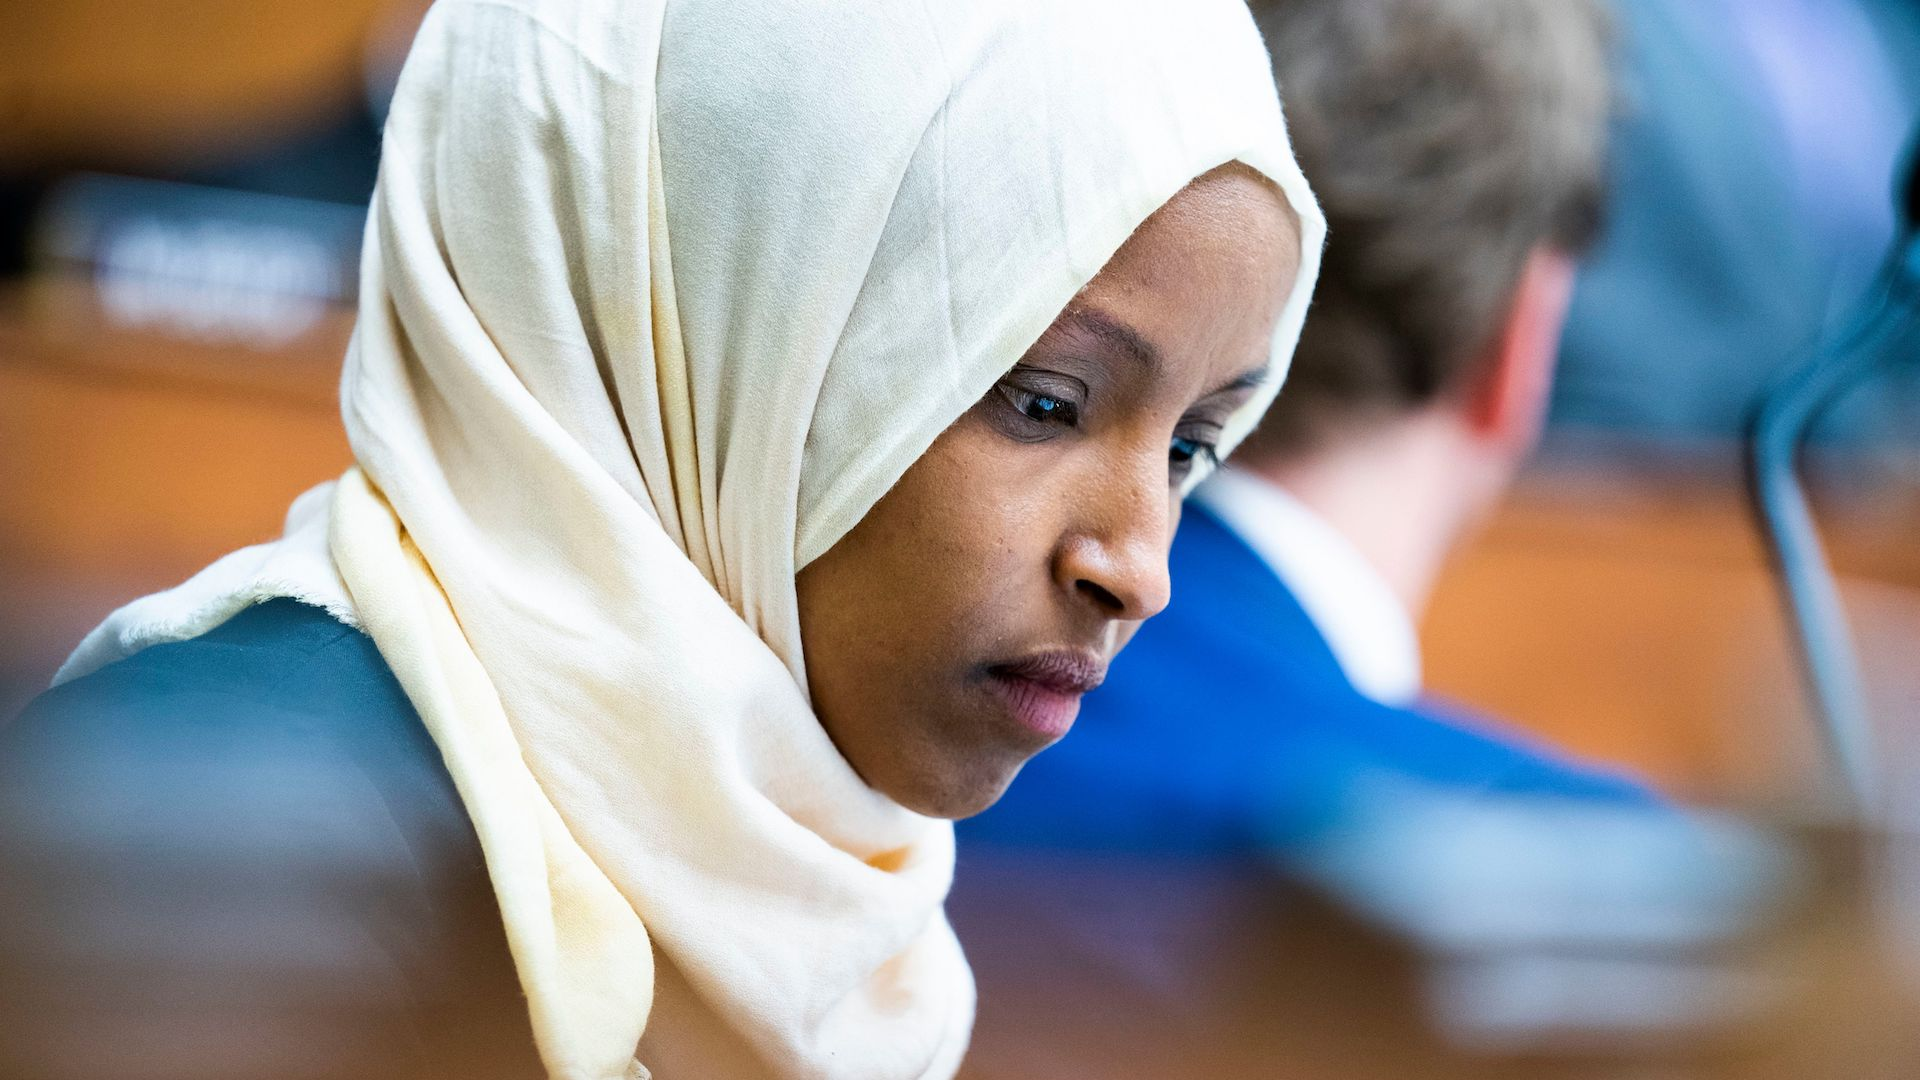 Ilhan Omar: We must apply our universal values to all nations. Only then will we achieve peace.